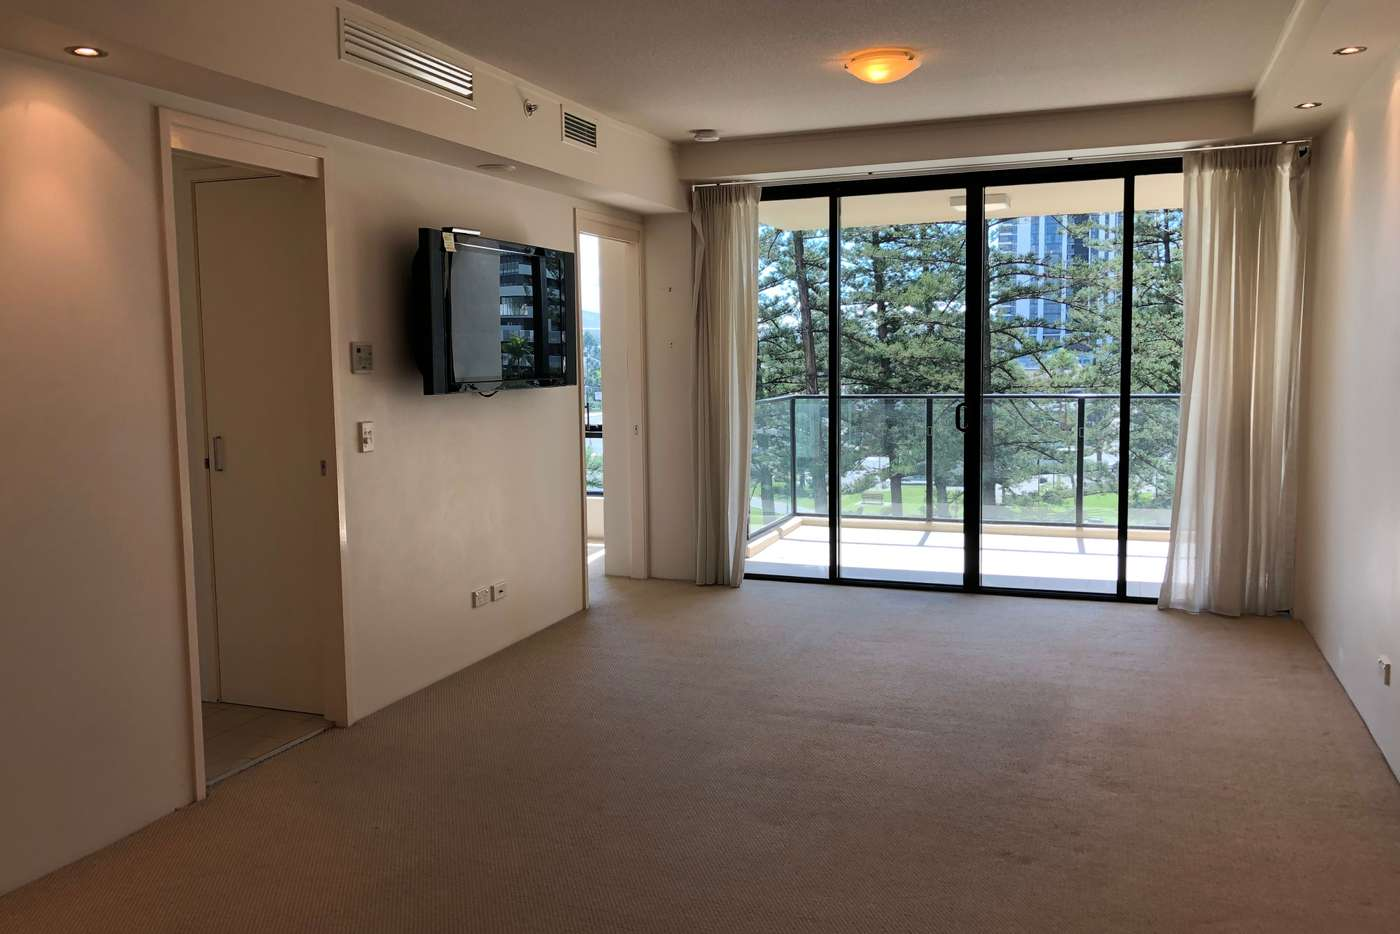 Sixth view of Homely apartment listing, 304/2685-2689 Gold Coast Highway, Broadbeach QLD 4218